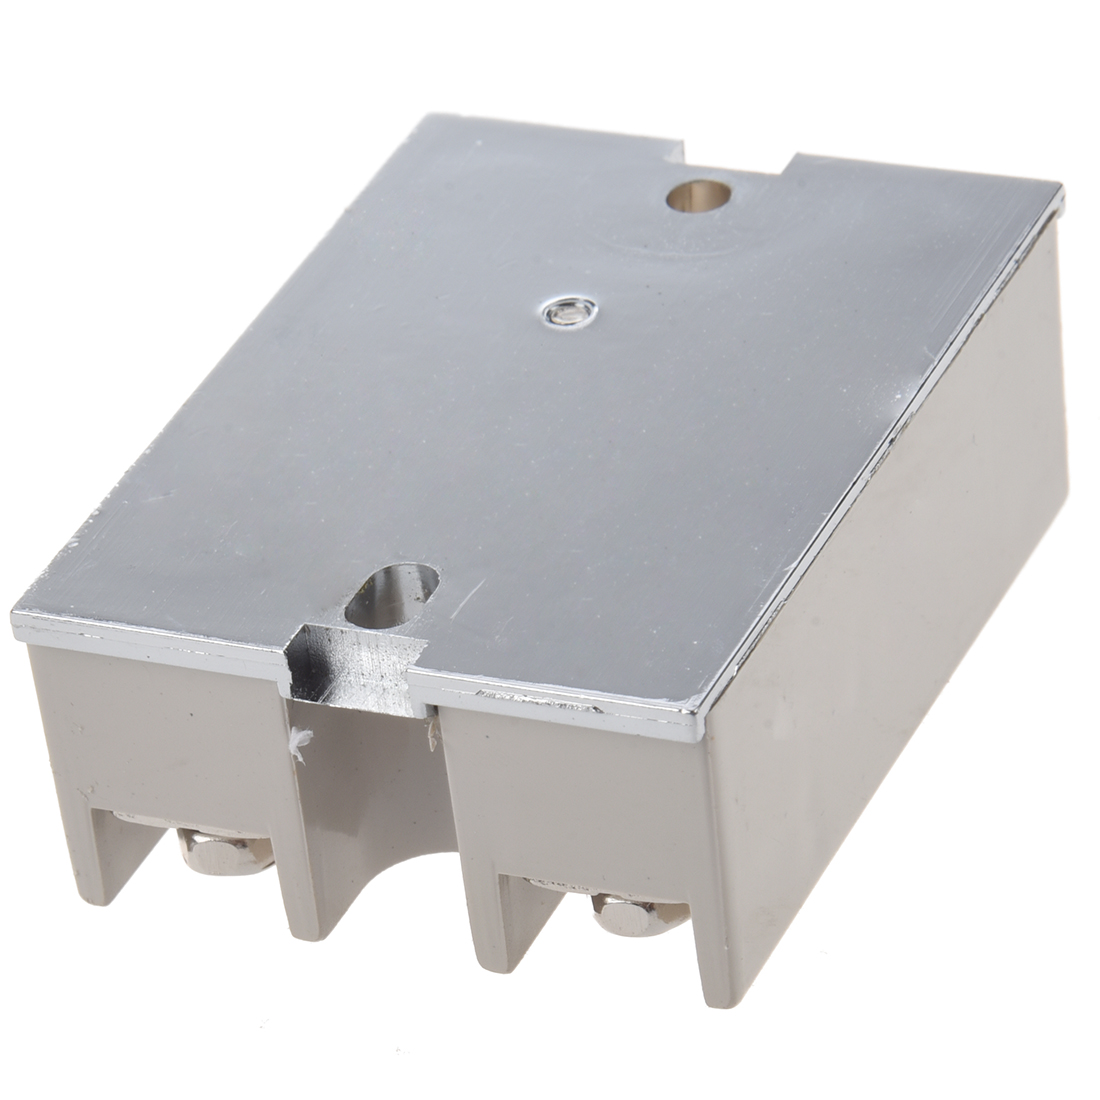 25A DCAC SSR Solid State Relay 3V32V DC input for oven W6G3 eBay